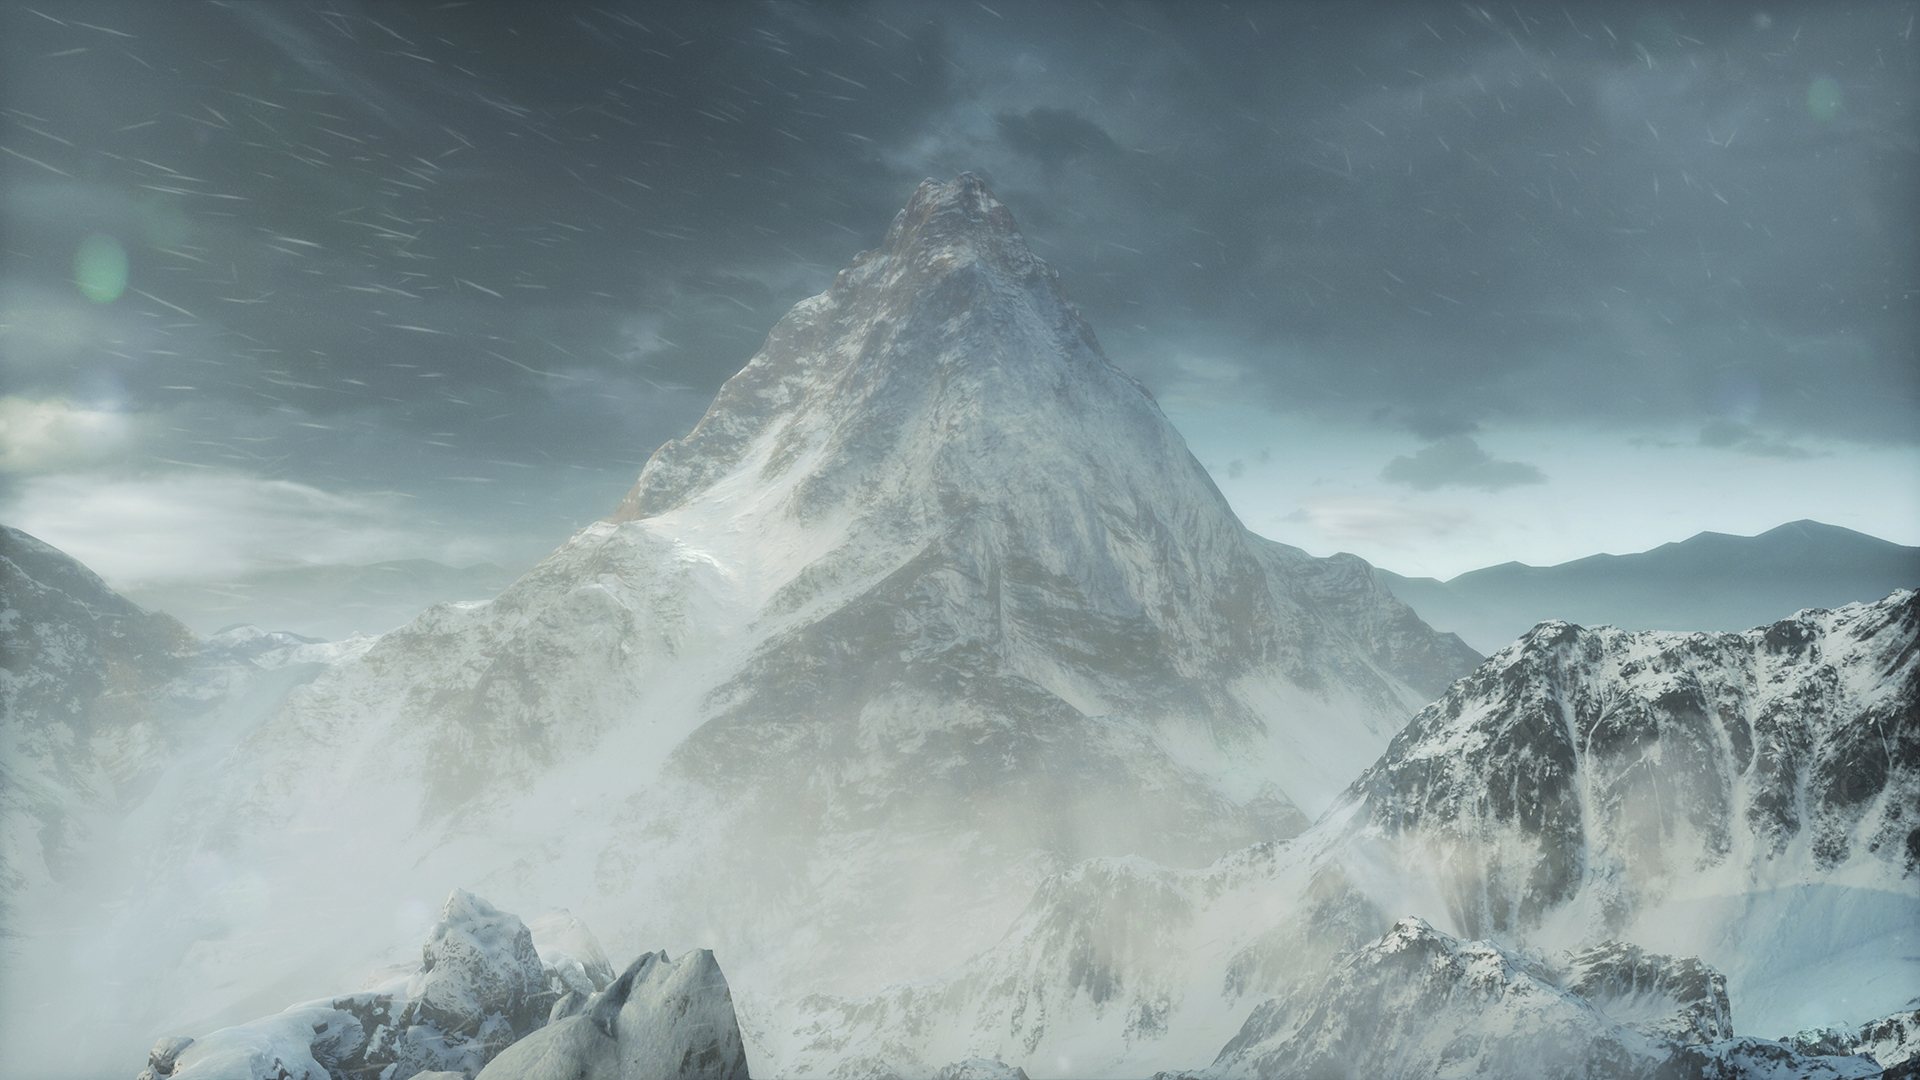 Picture from the game Rise of the tomb raider, Mountain Peak.